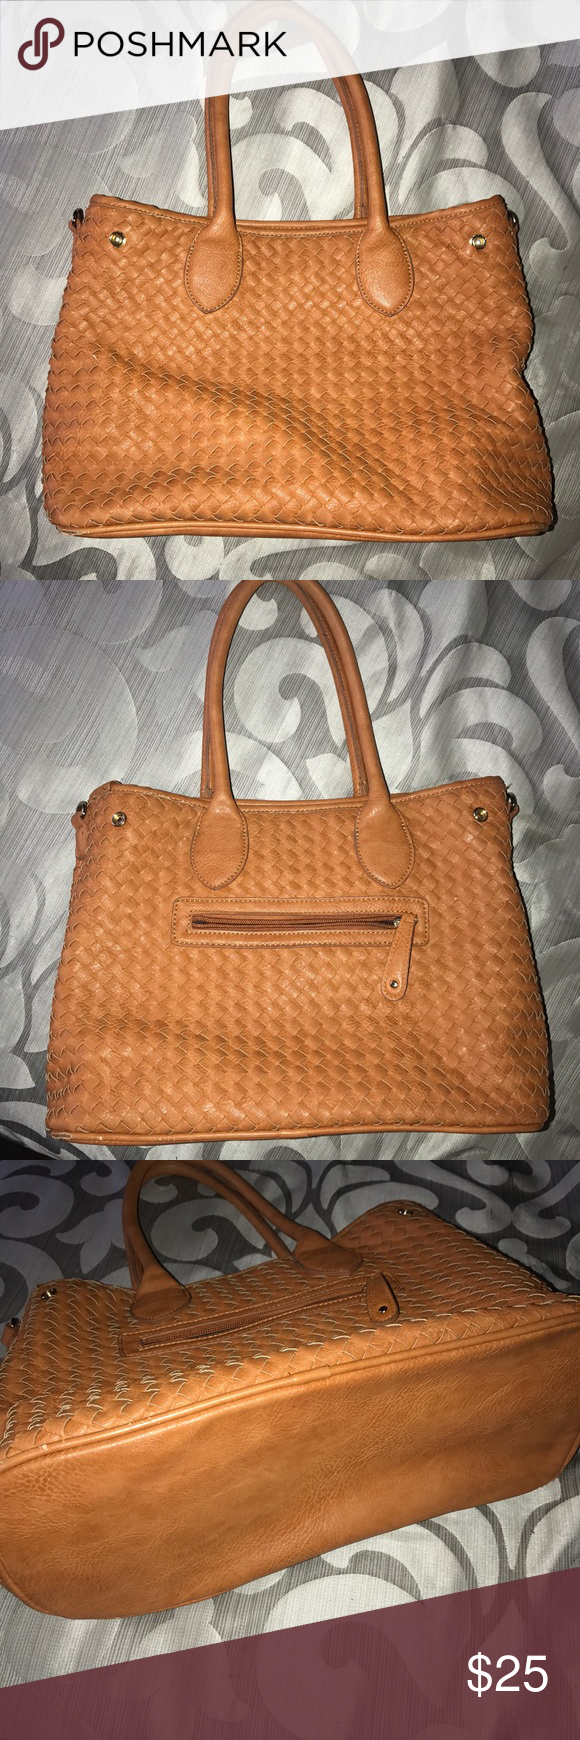 Street Level Purse Shoulderbag Great condition other than wear on couple bottom corners Street Level Bags Shoulder Bags